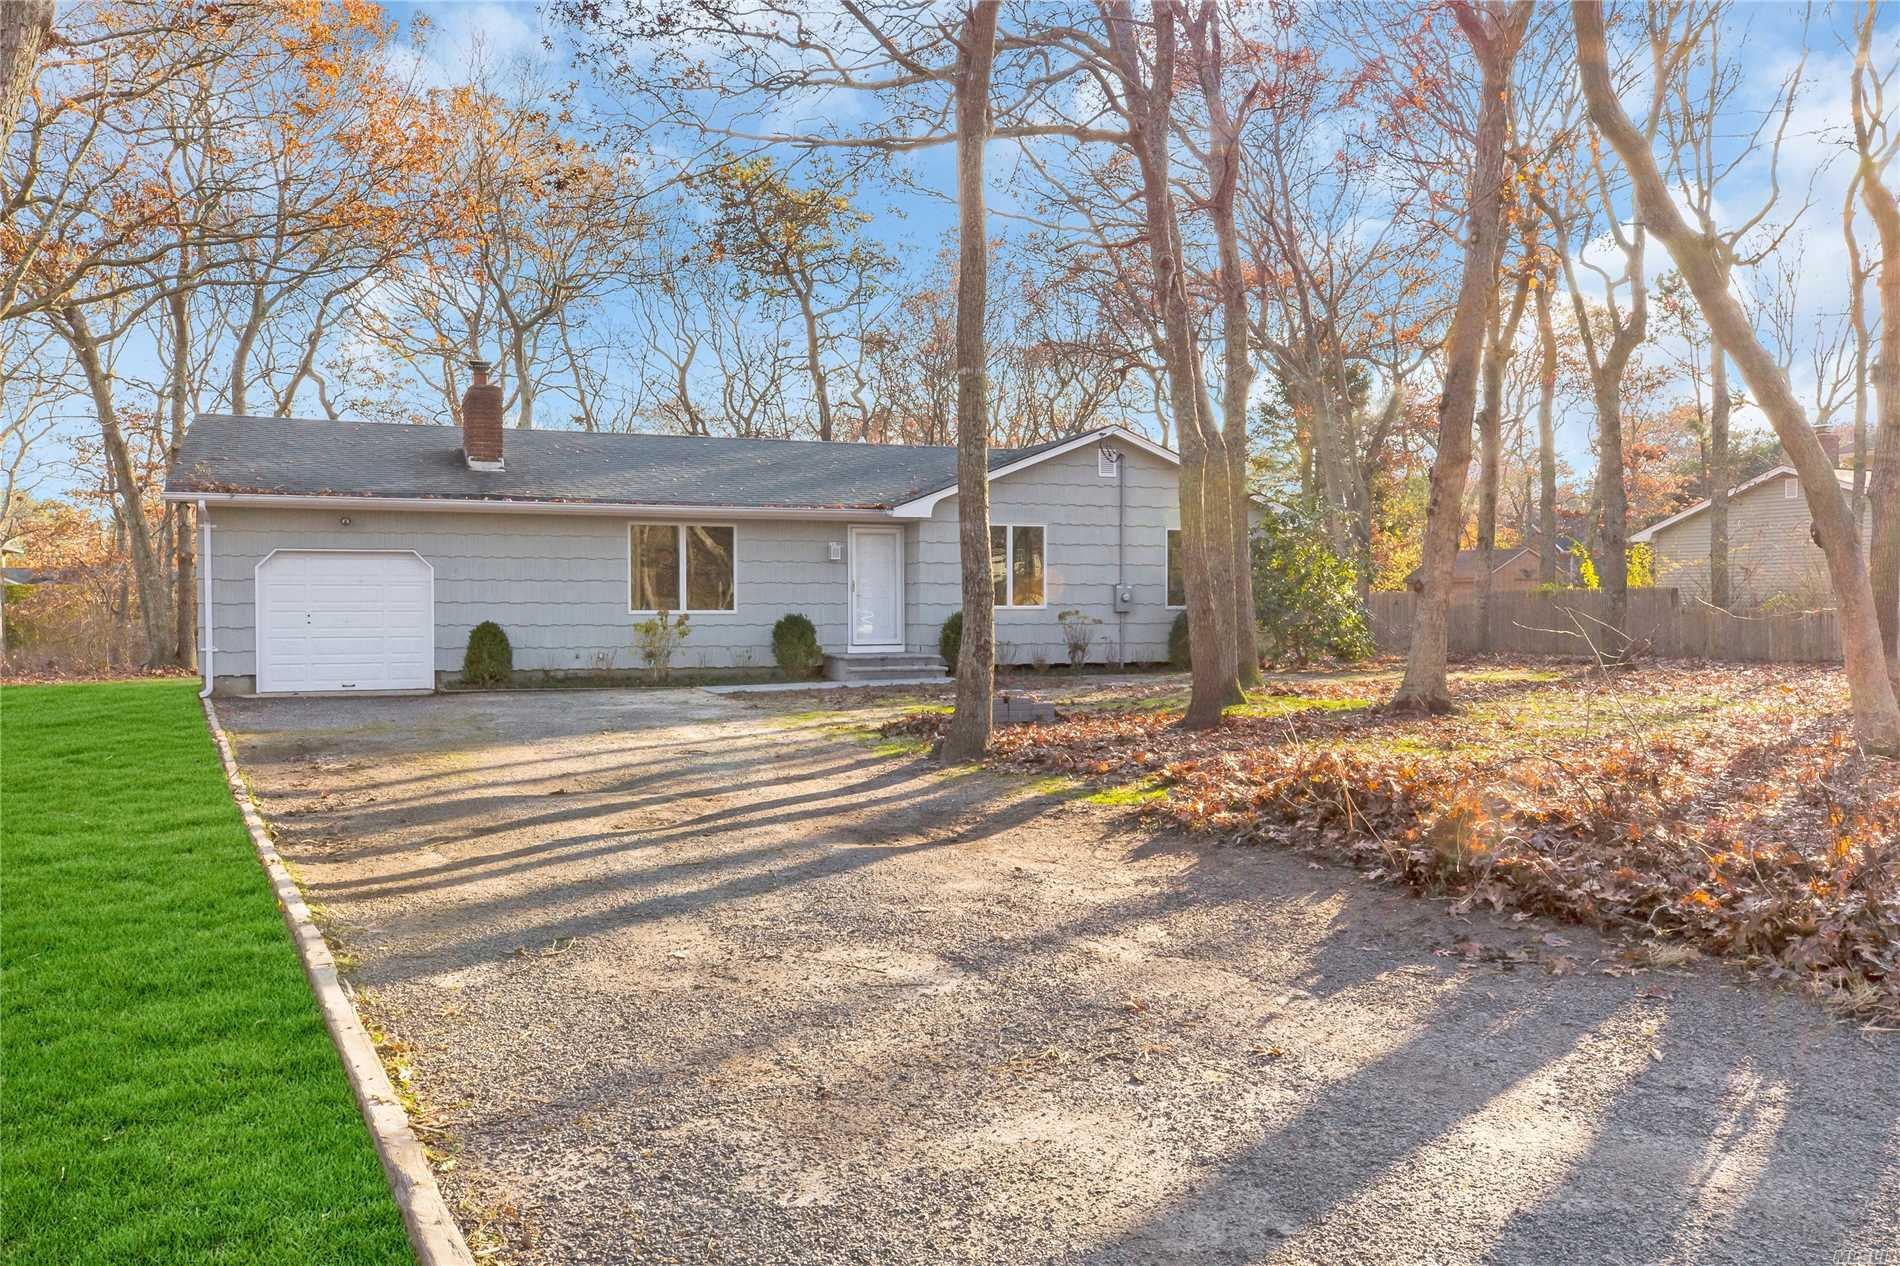 Photo of home for sale at 51 Ocean Ave, Hampton Bays NY